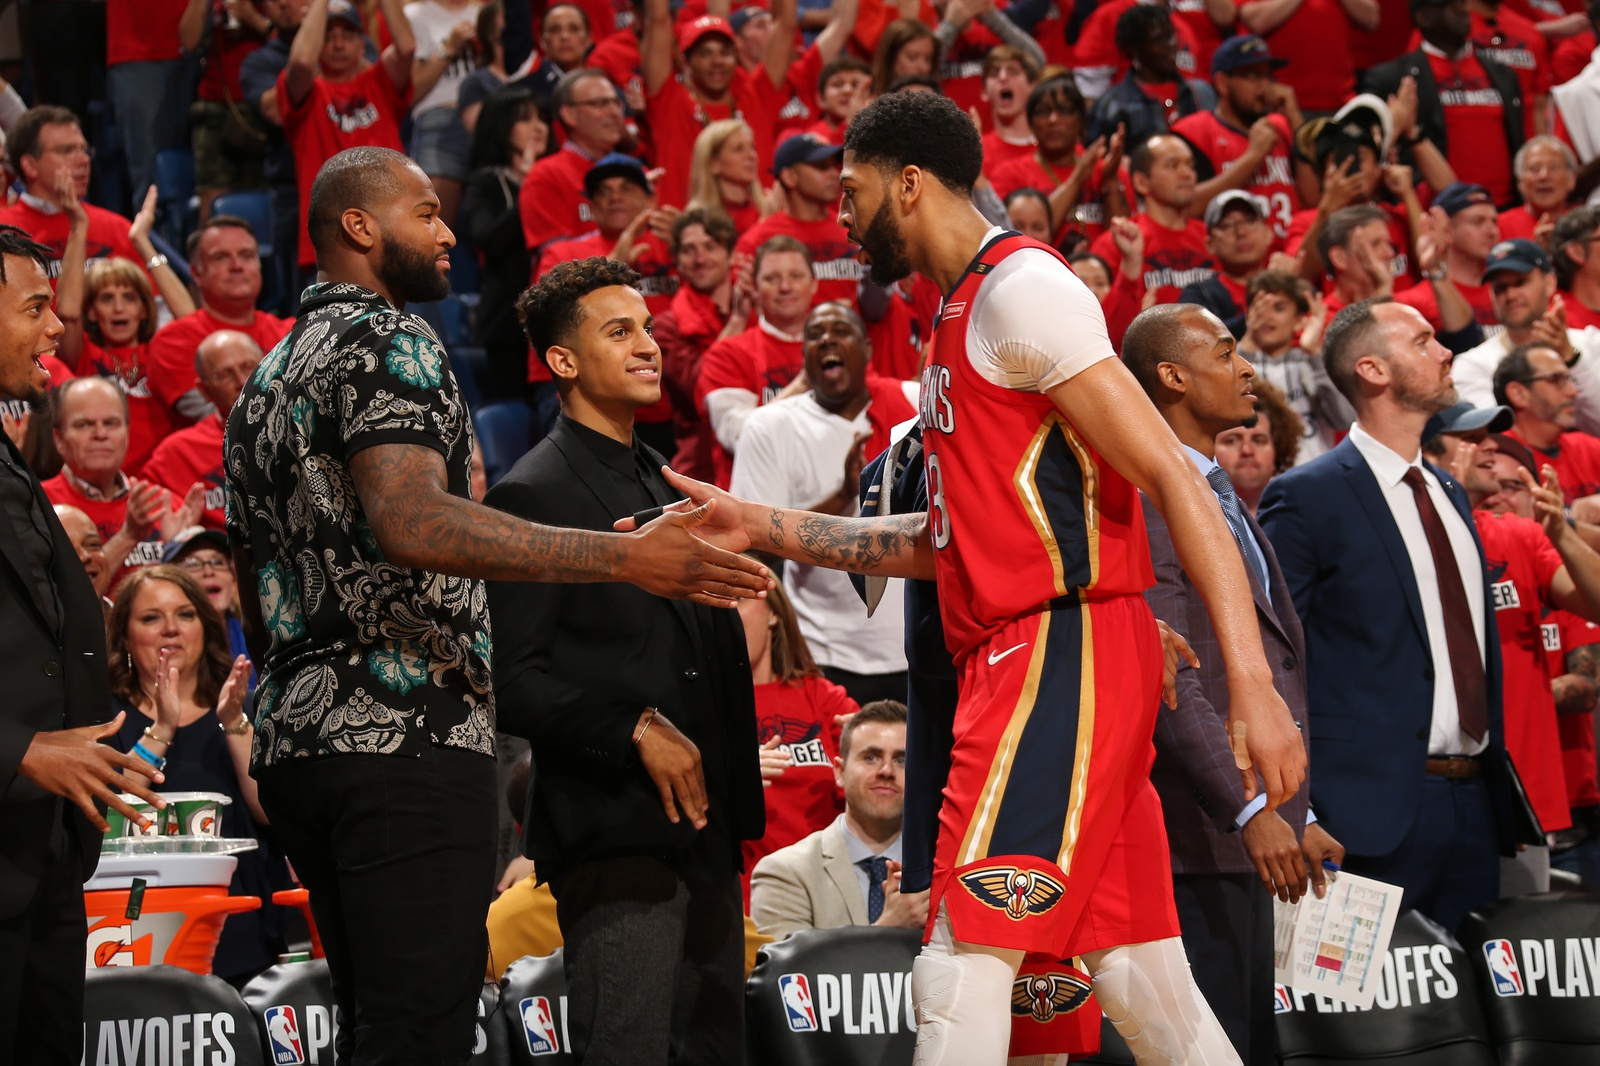 Anthony Davis #23 of the New Orleans Pelicans high-fives DeMarcus Cousins #0 of the New Orleans Pelicans during the game against the Portland Trail Blazers in Game Three of Round One of the 2018 NBA Playoffs on April 19, 2018 at Smoothie King Center in New Orleans, Louisiana.